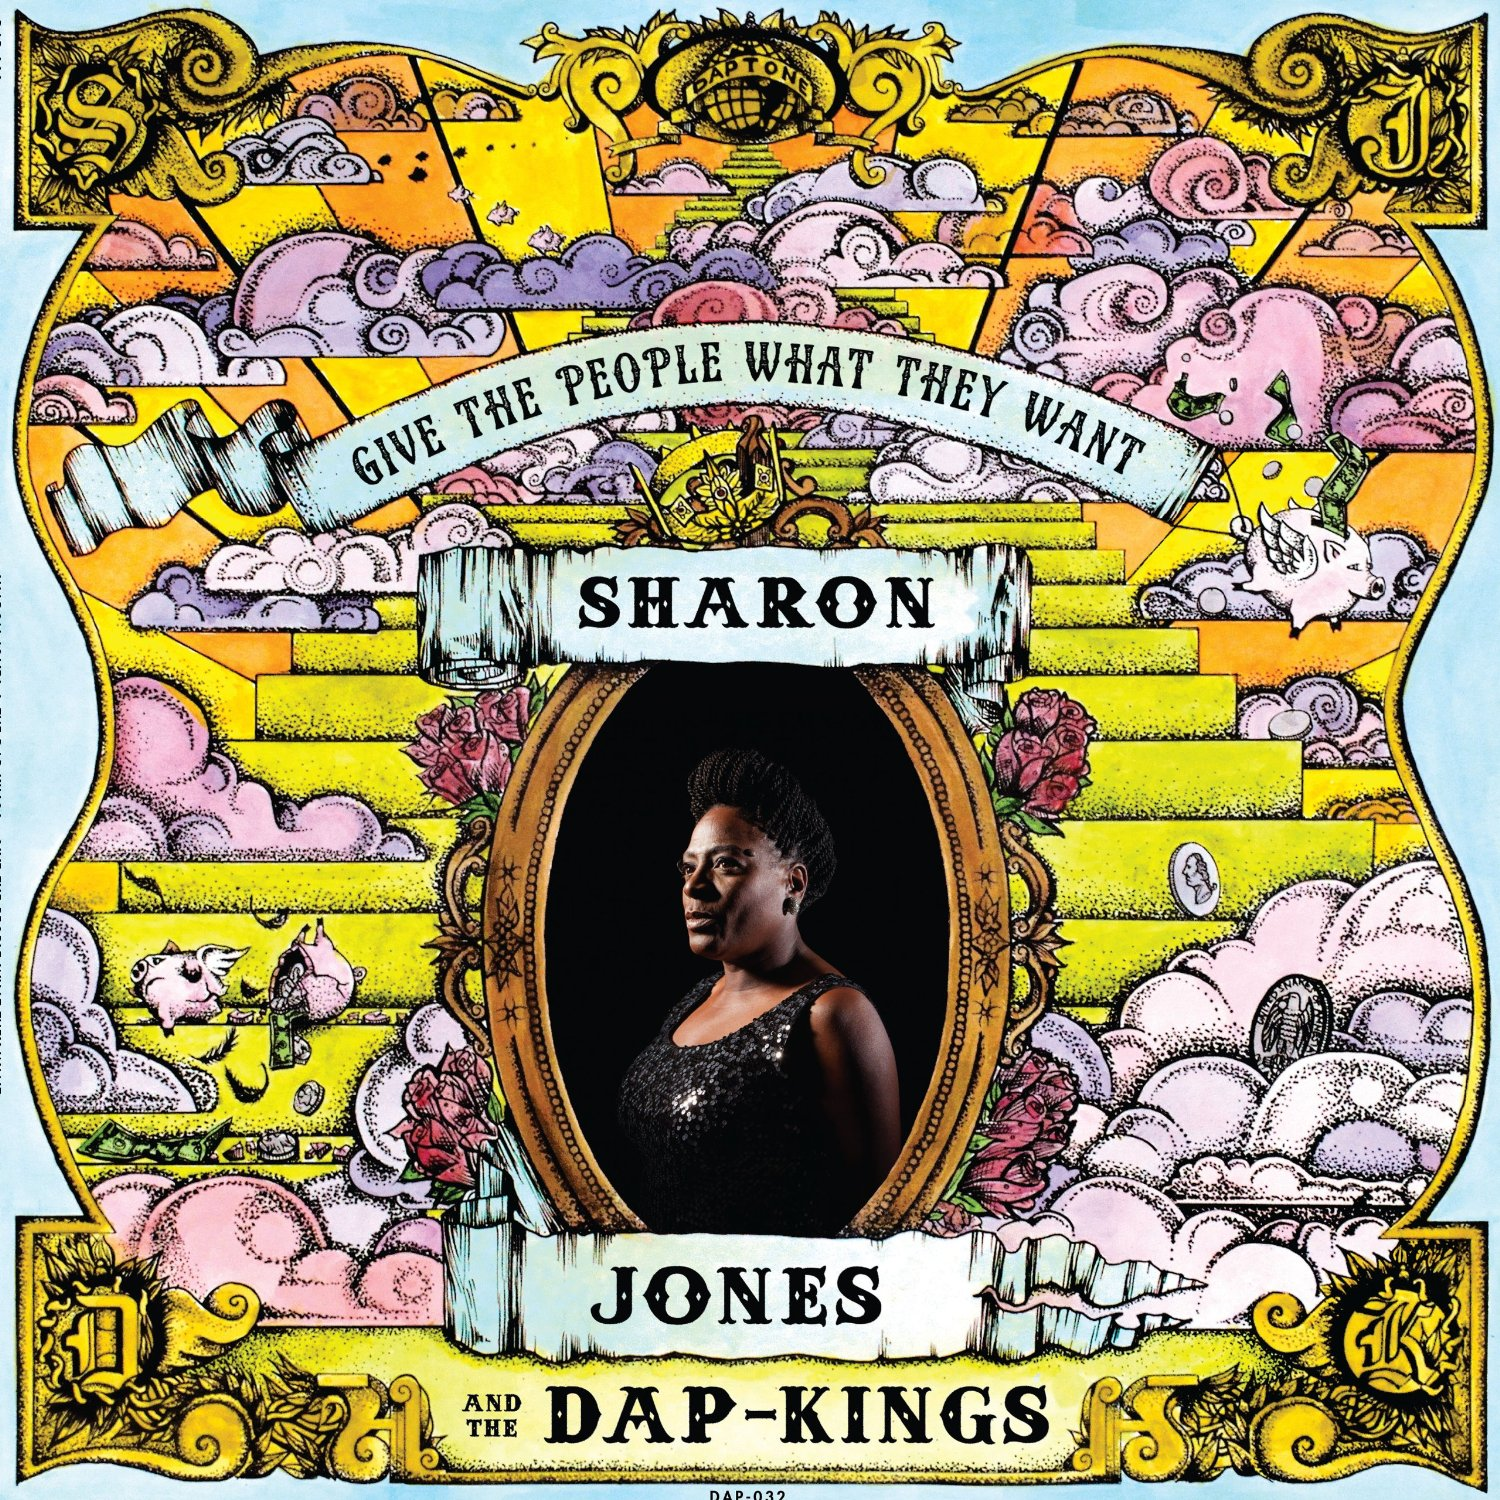 sharon jones givethepeoplewhattheywant cover